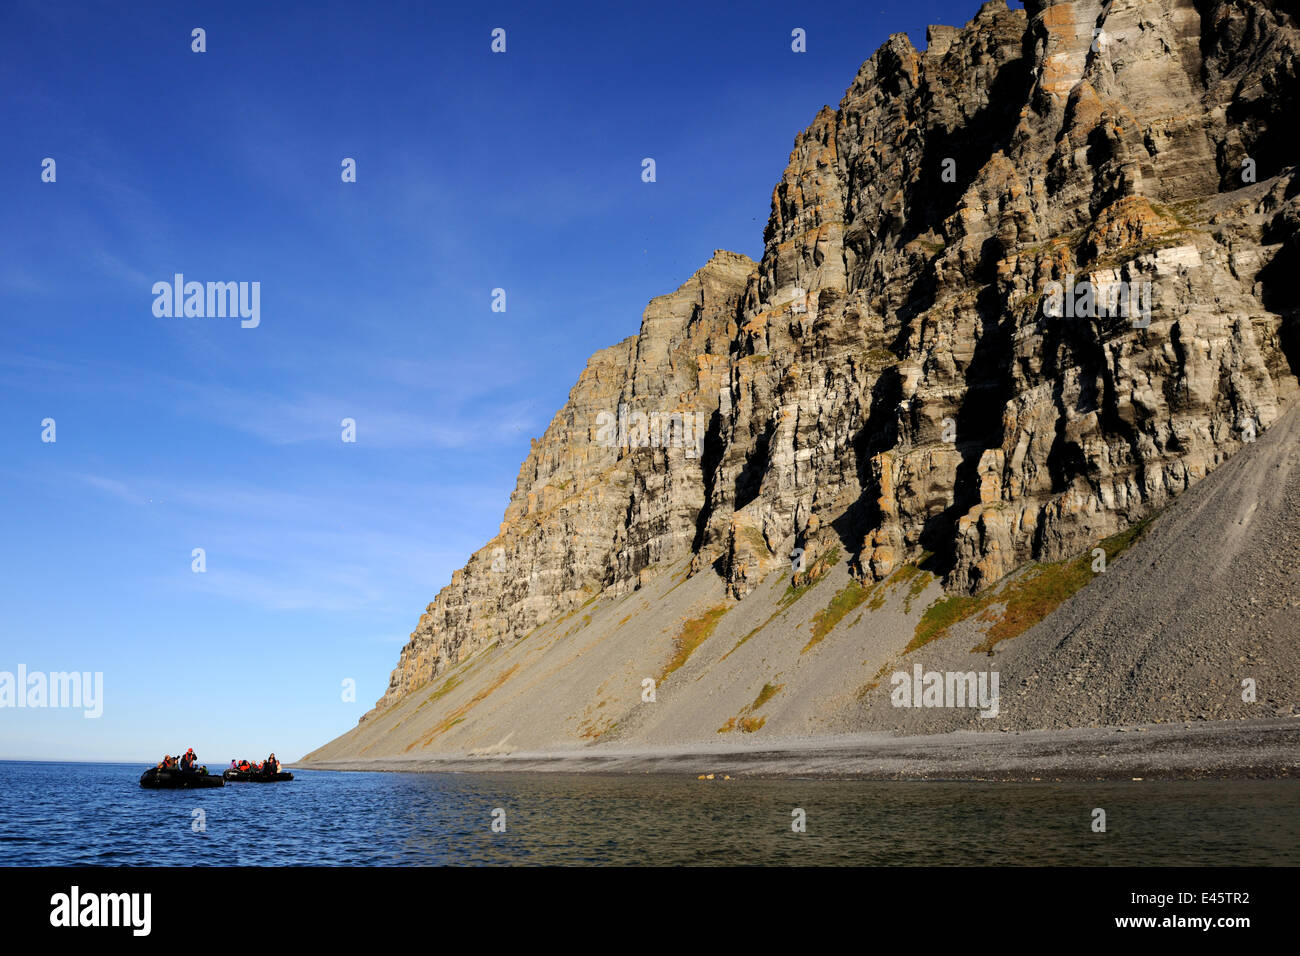 Tourists in a Zodiac rib, looking at the Liddon Cliffs   Devon Island, Nunavut, Canada, August 2010 - Stock Image